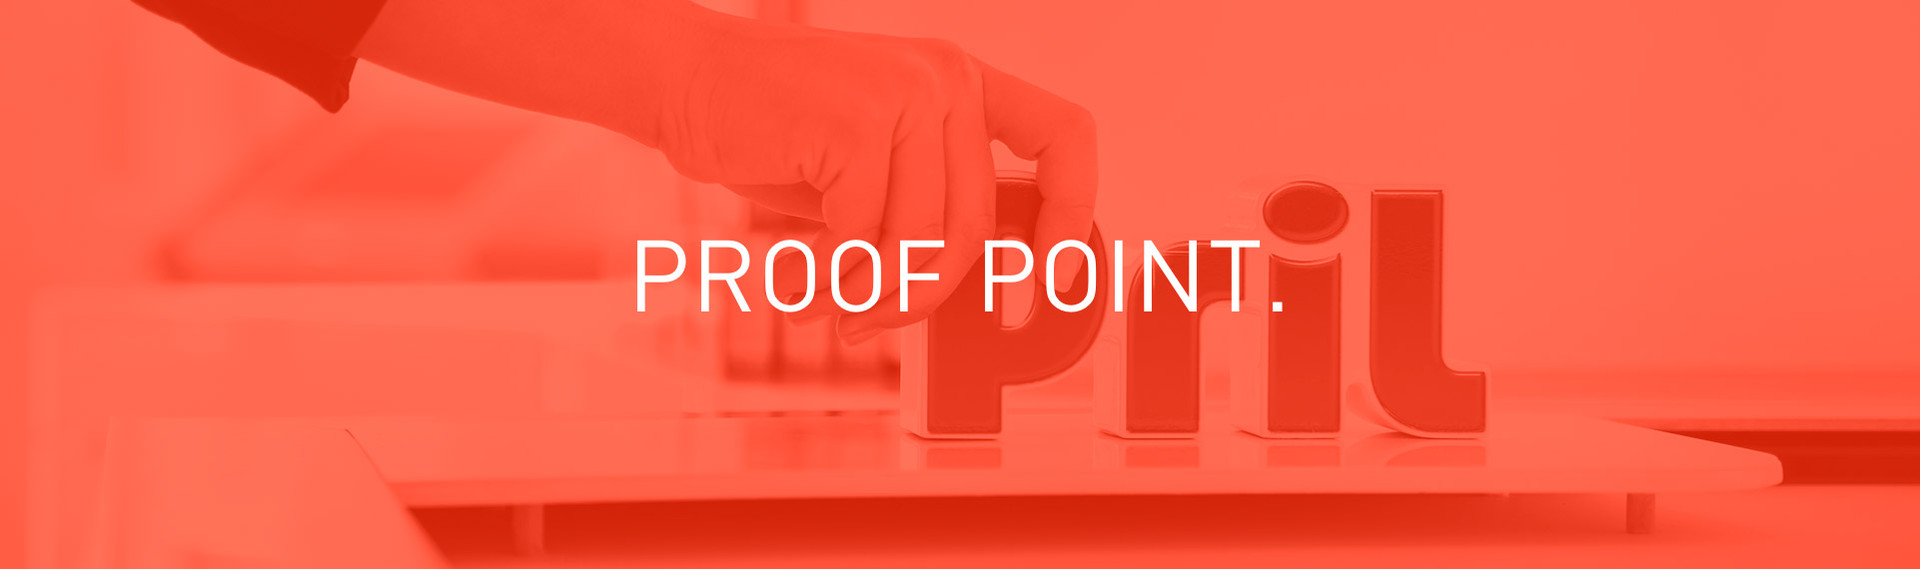 Proof Point